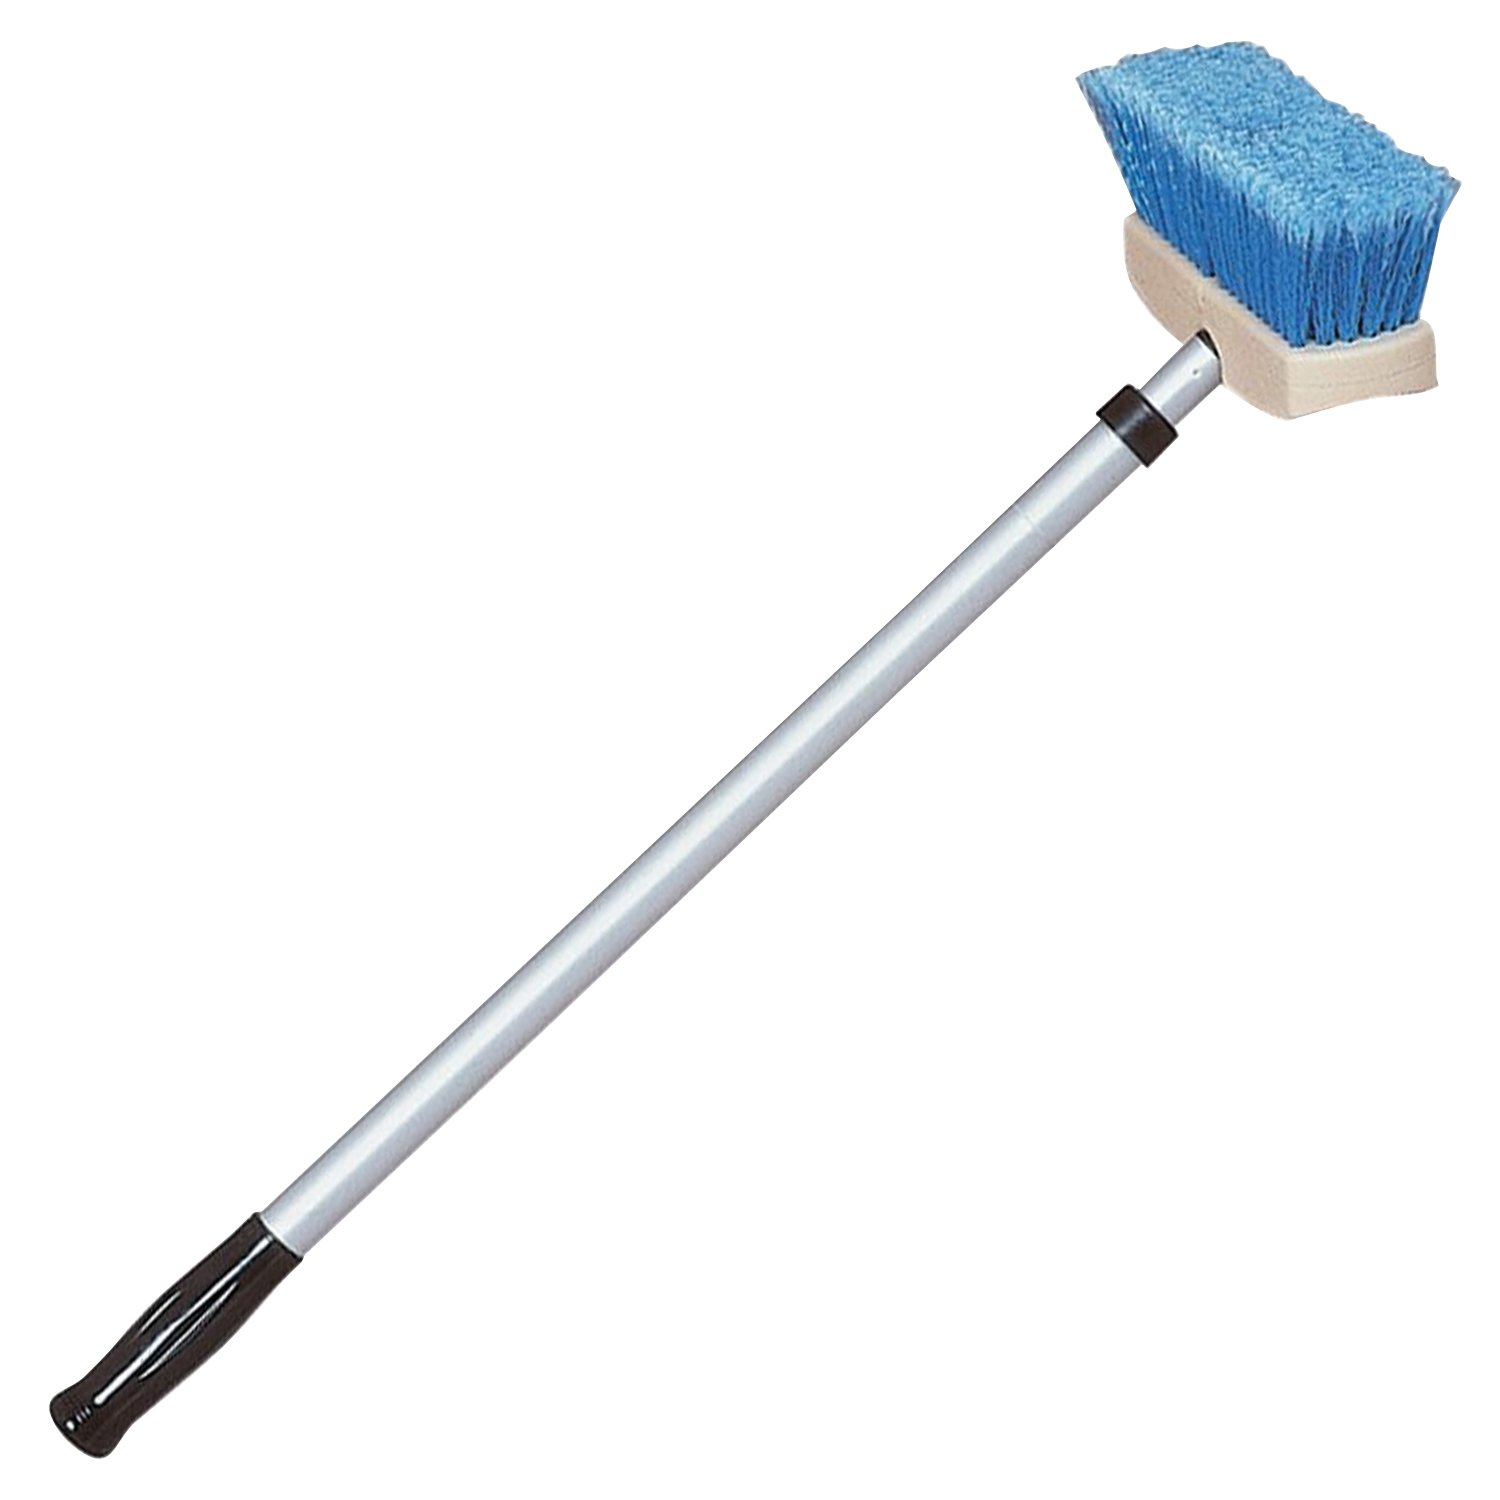 Star brite Brush & Compact Handle Combo - Extends 2'-4' - Made in USA by Star Brite (Image #1)